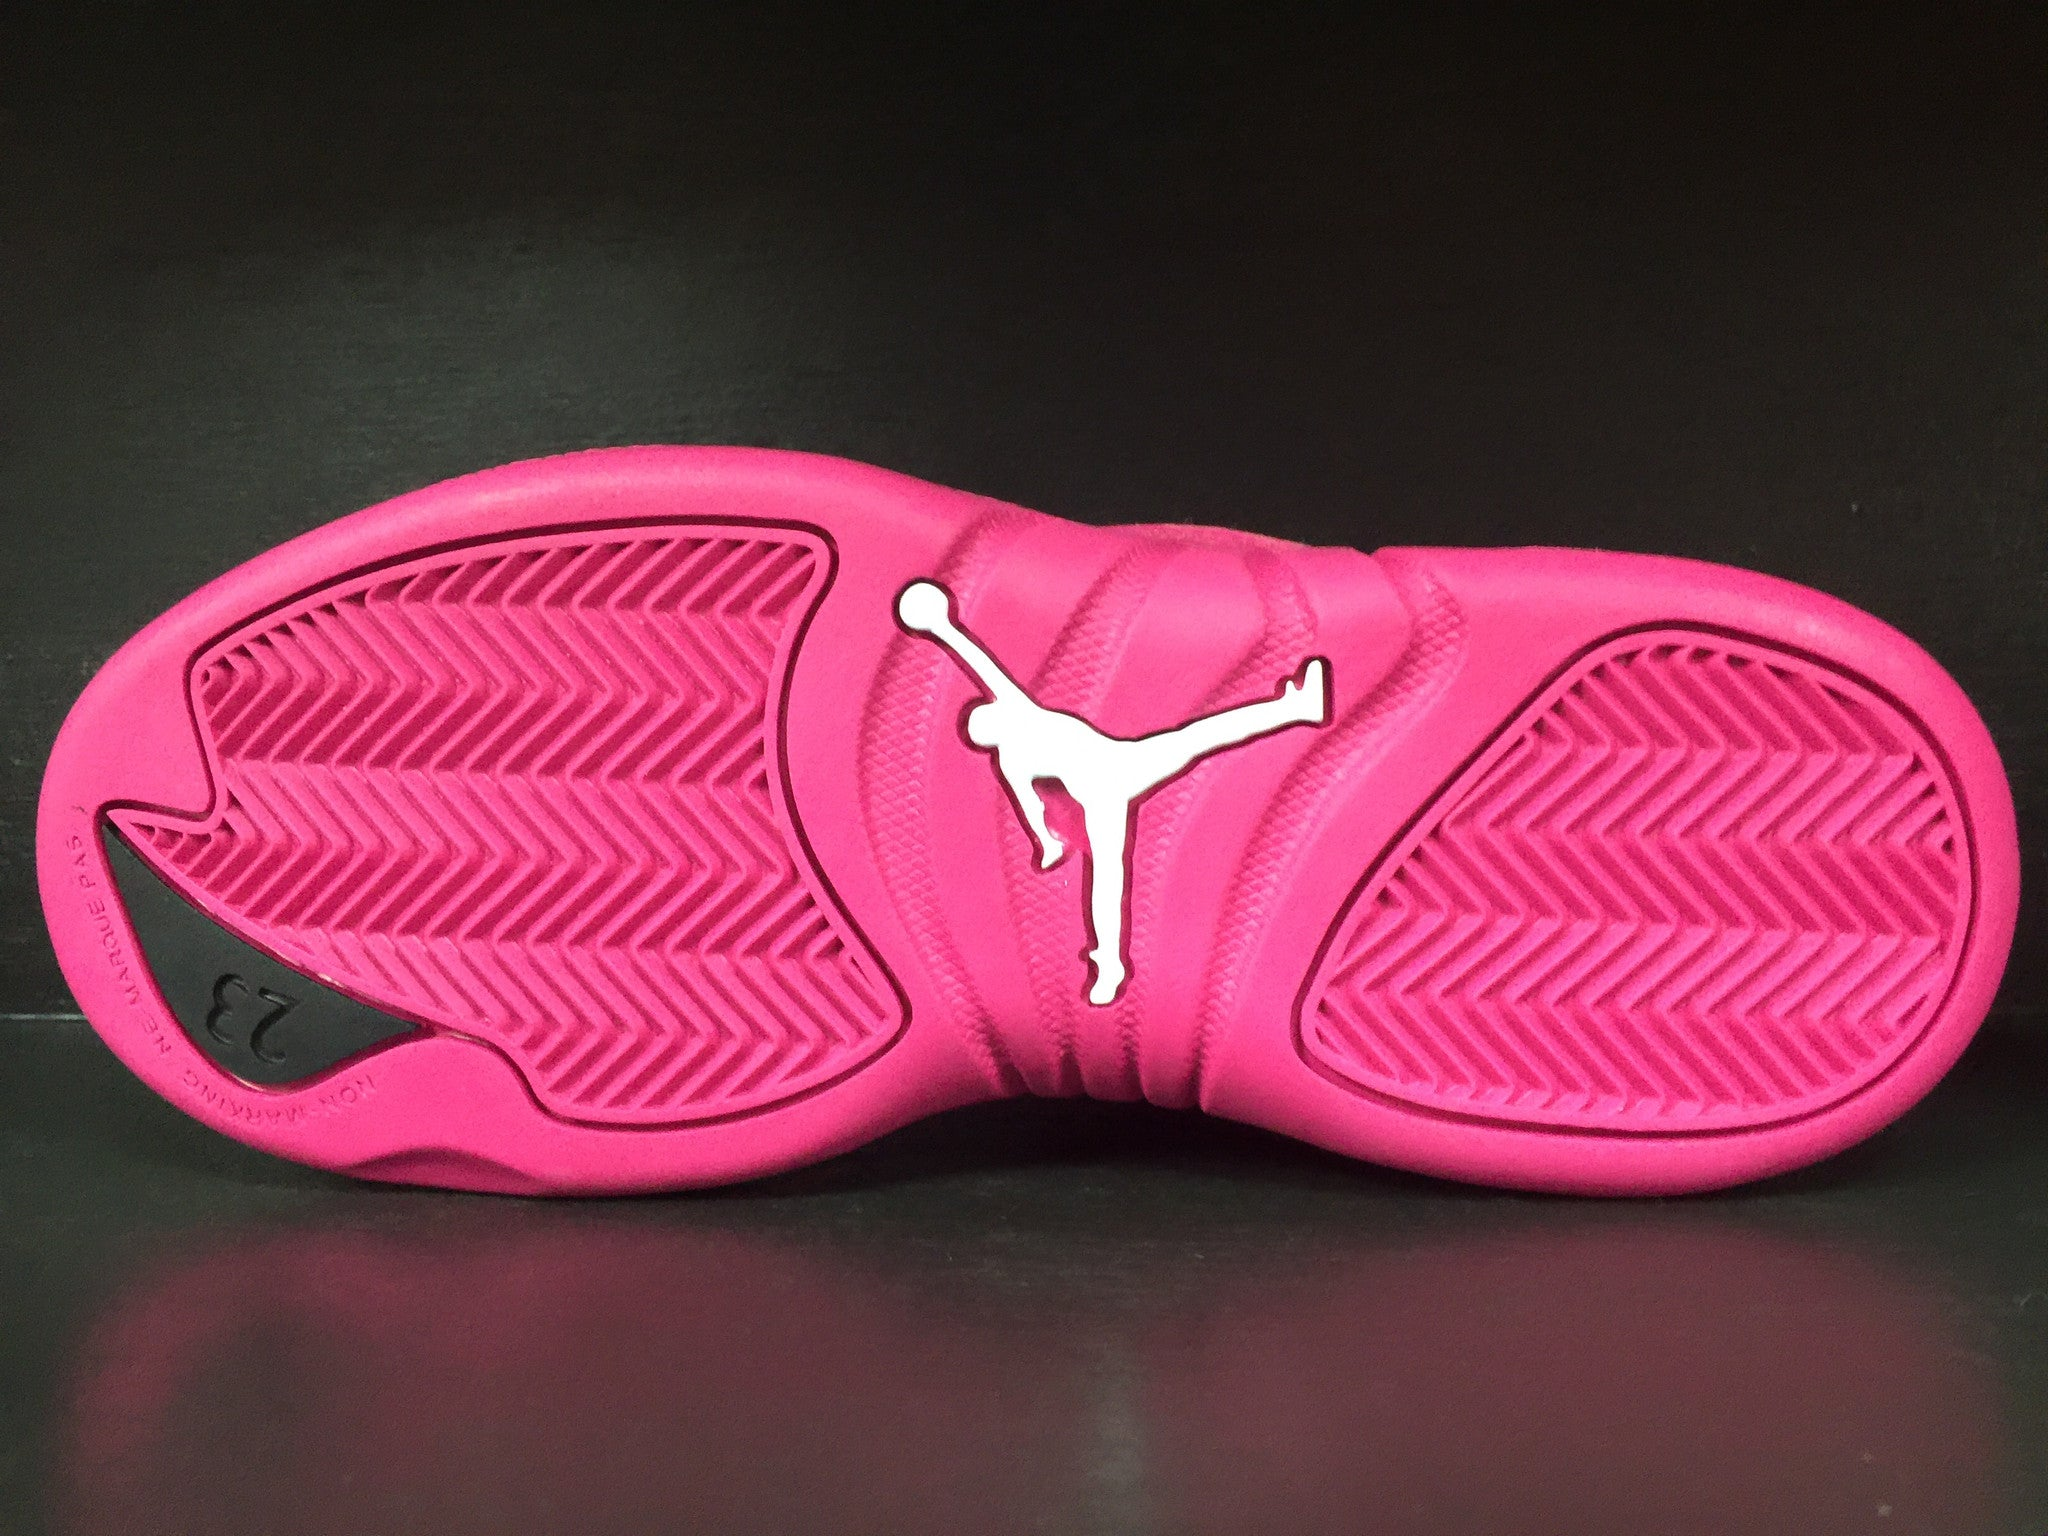 Jordan 12 Retro GP 'Dynamic Pink' Preschool